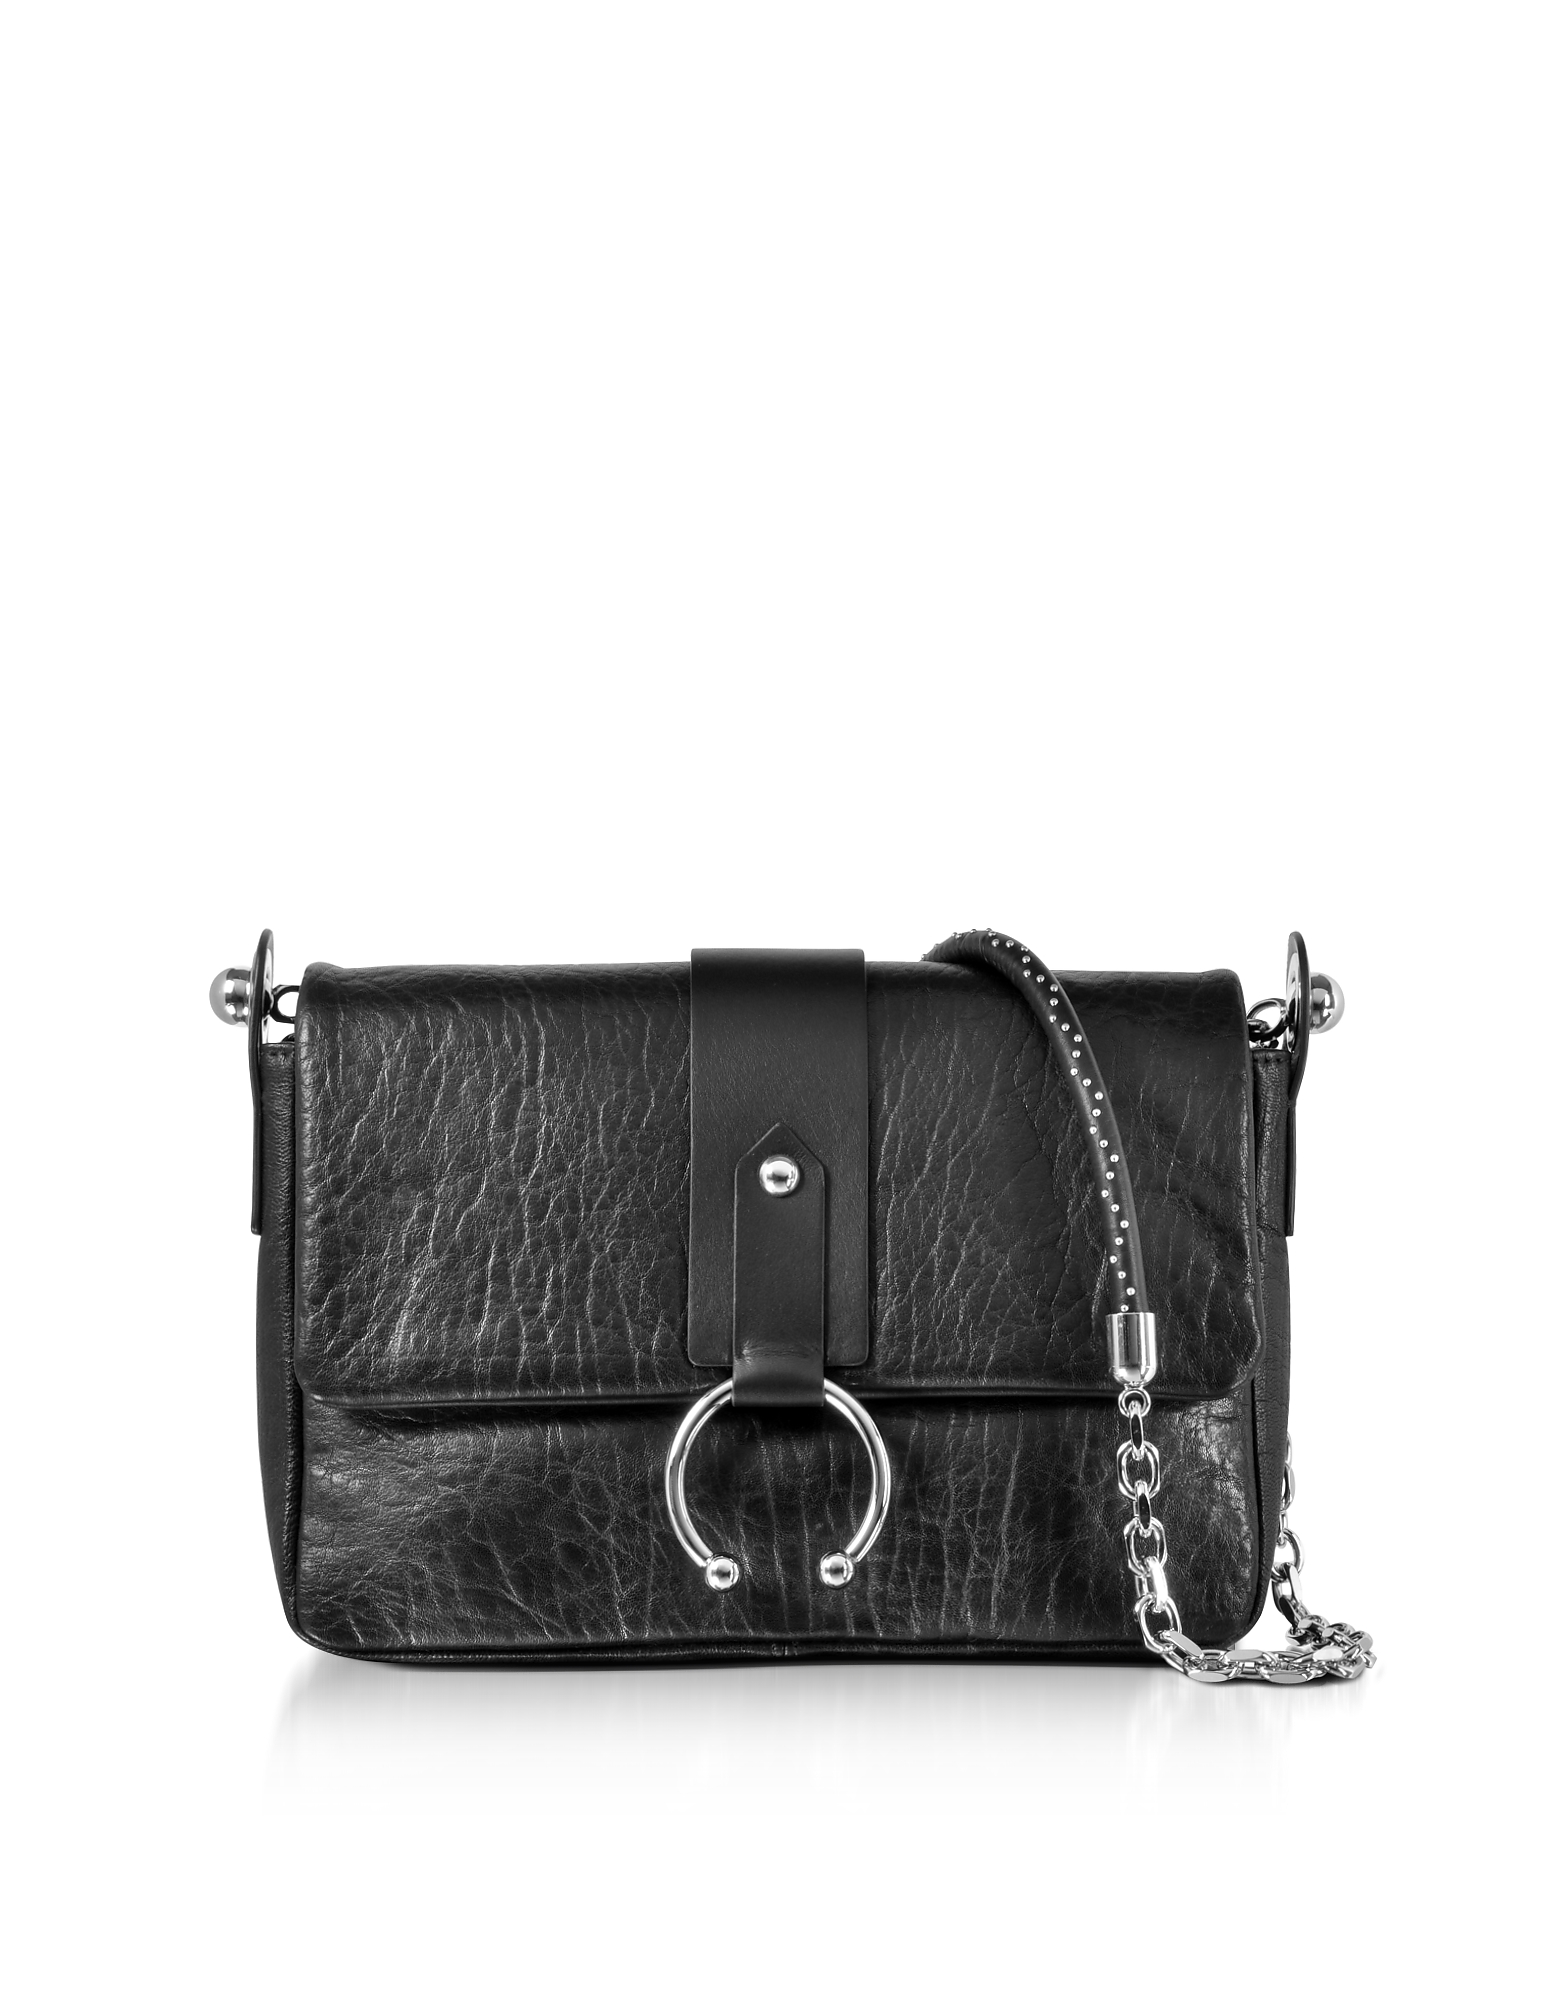 RED Valentino Handbags, Black Hammered Leather Shoulder Bag